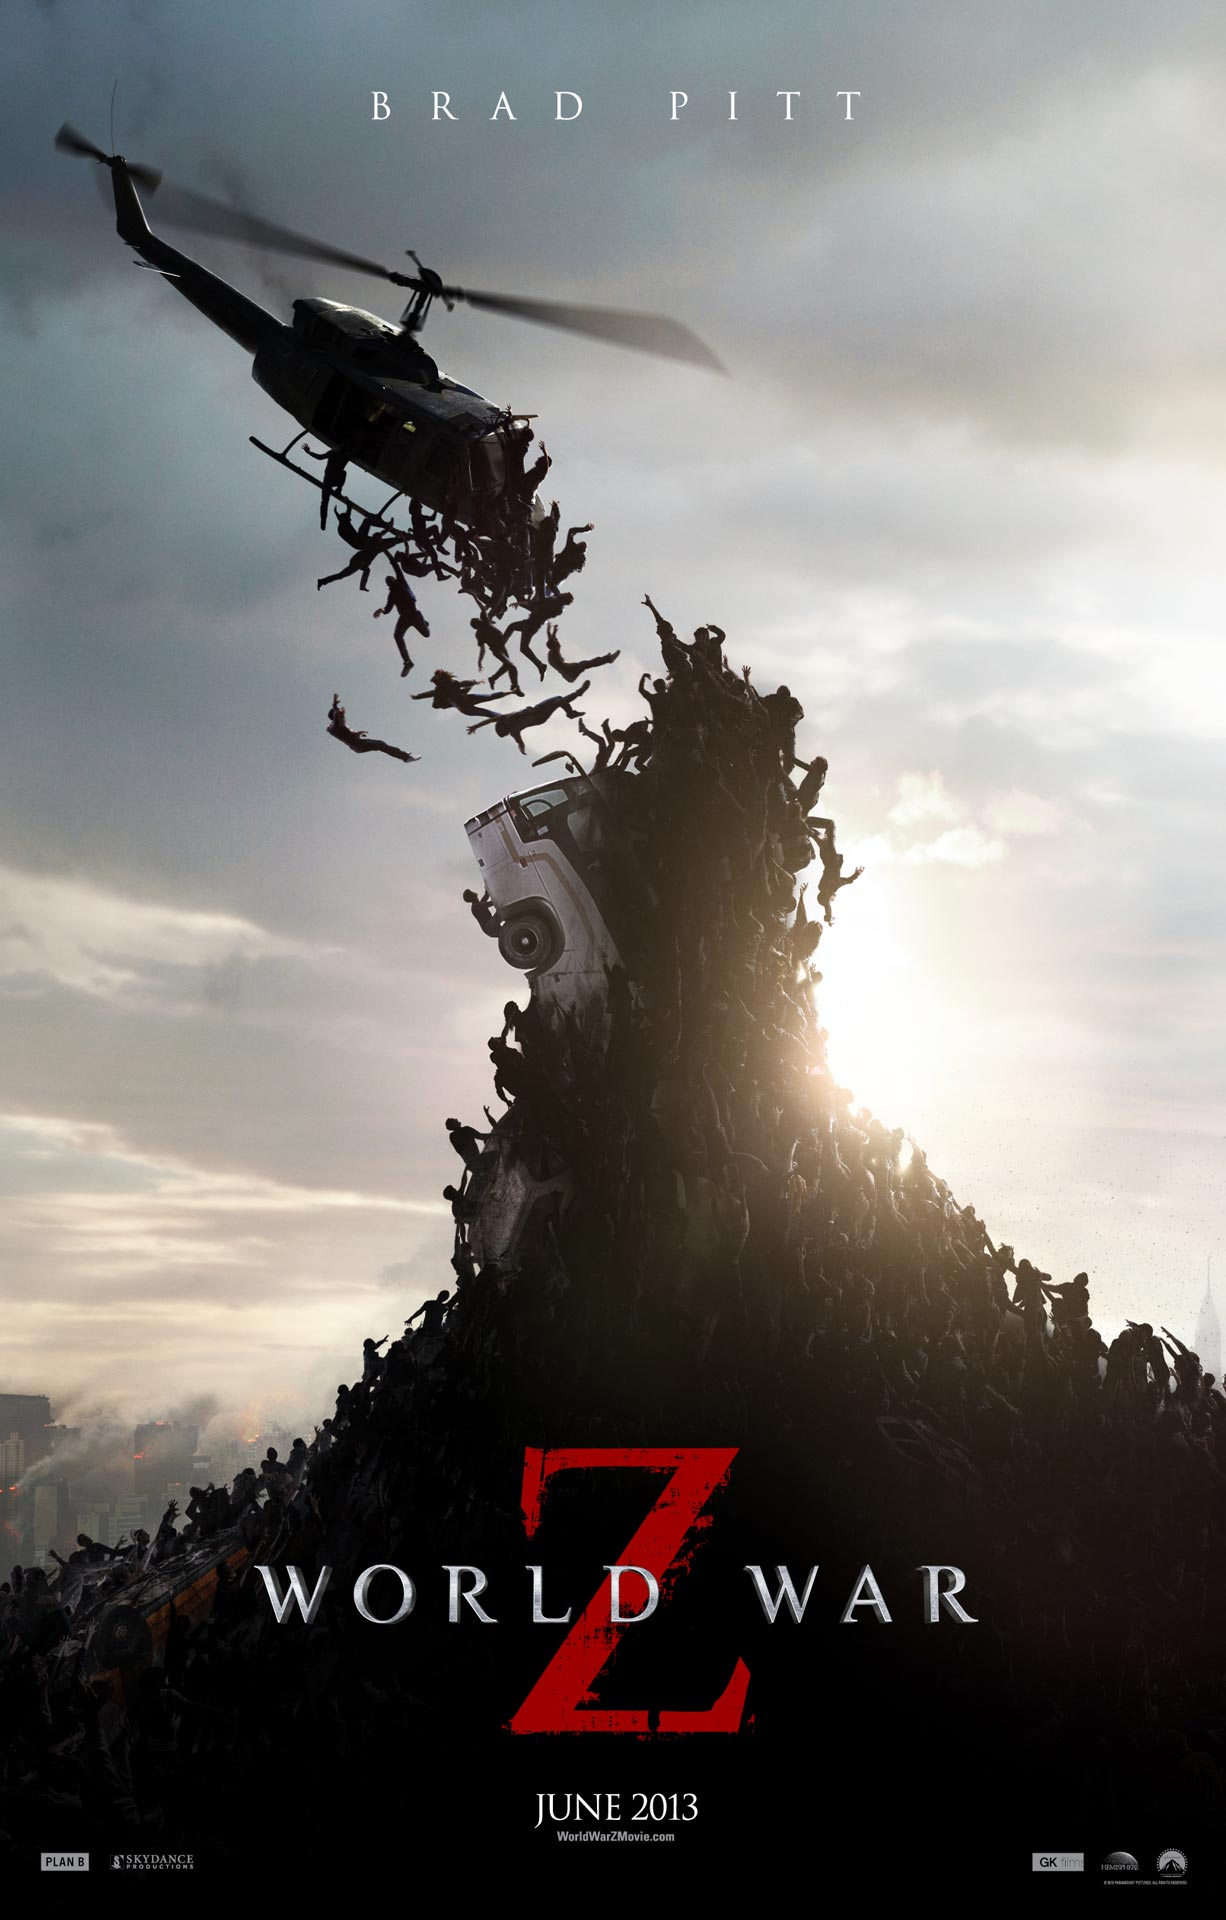 Poster of the World War Z movie released in 2013.